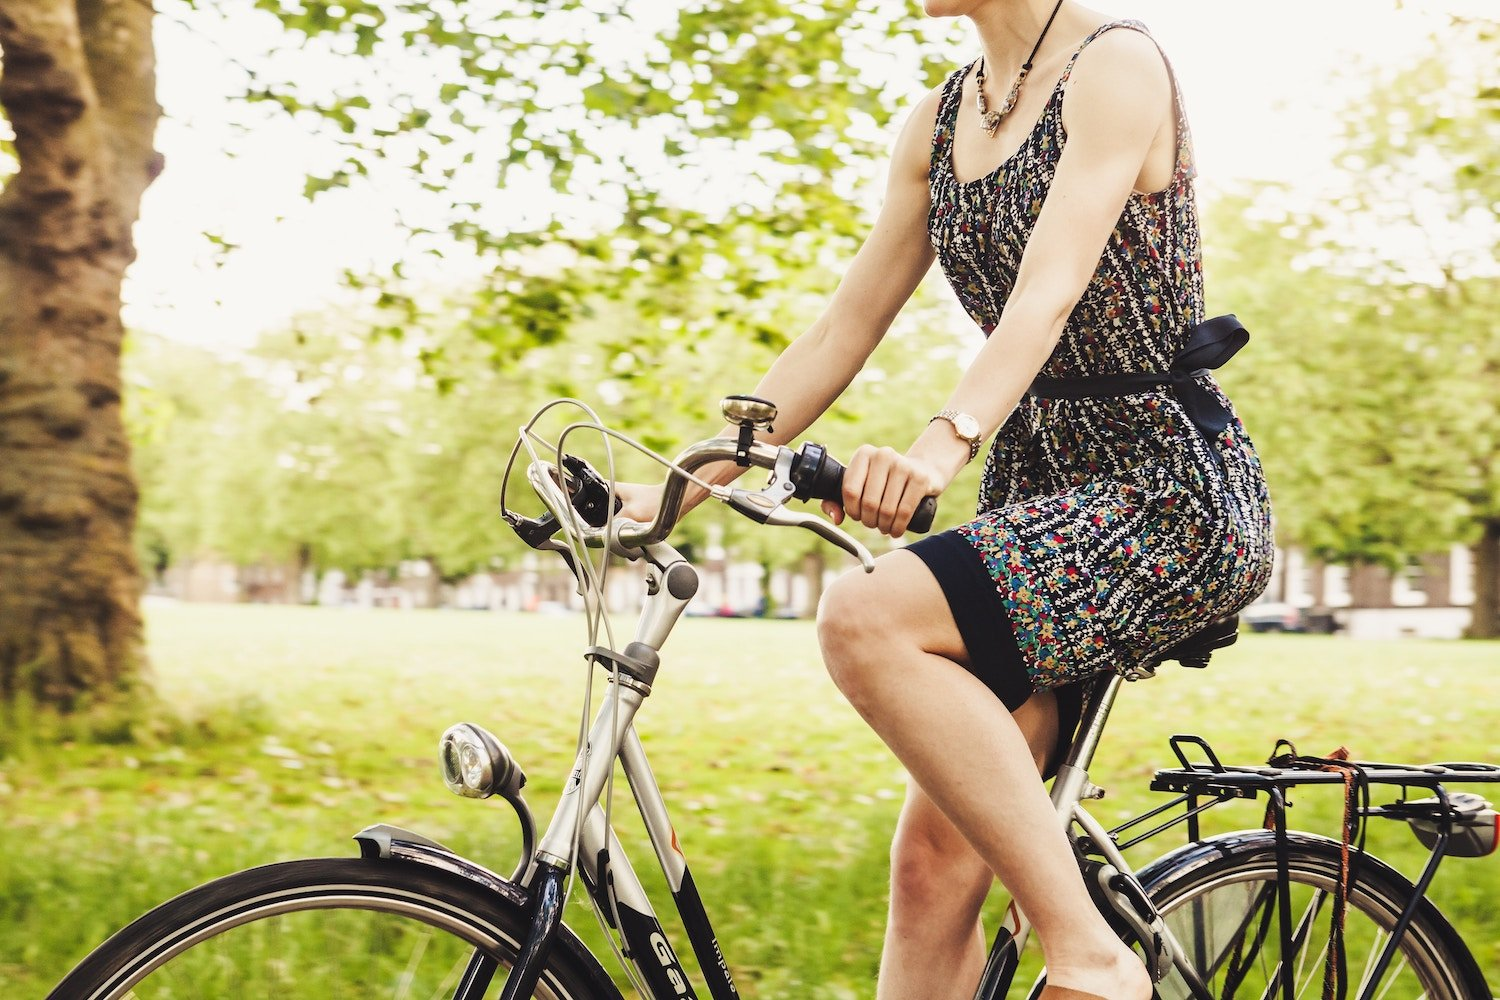 girl in dress riding a bicycle in a park